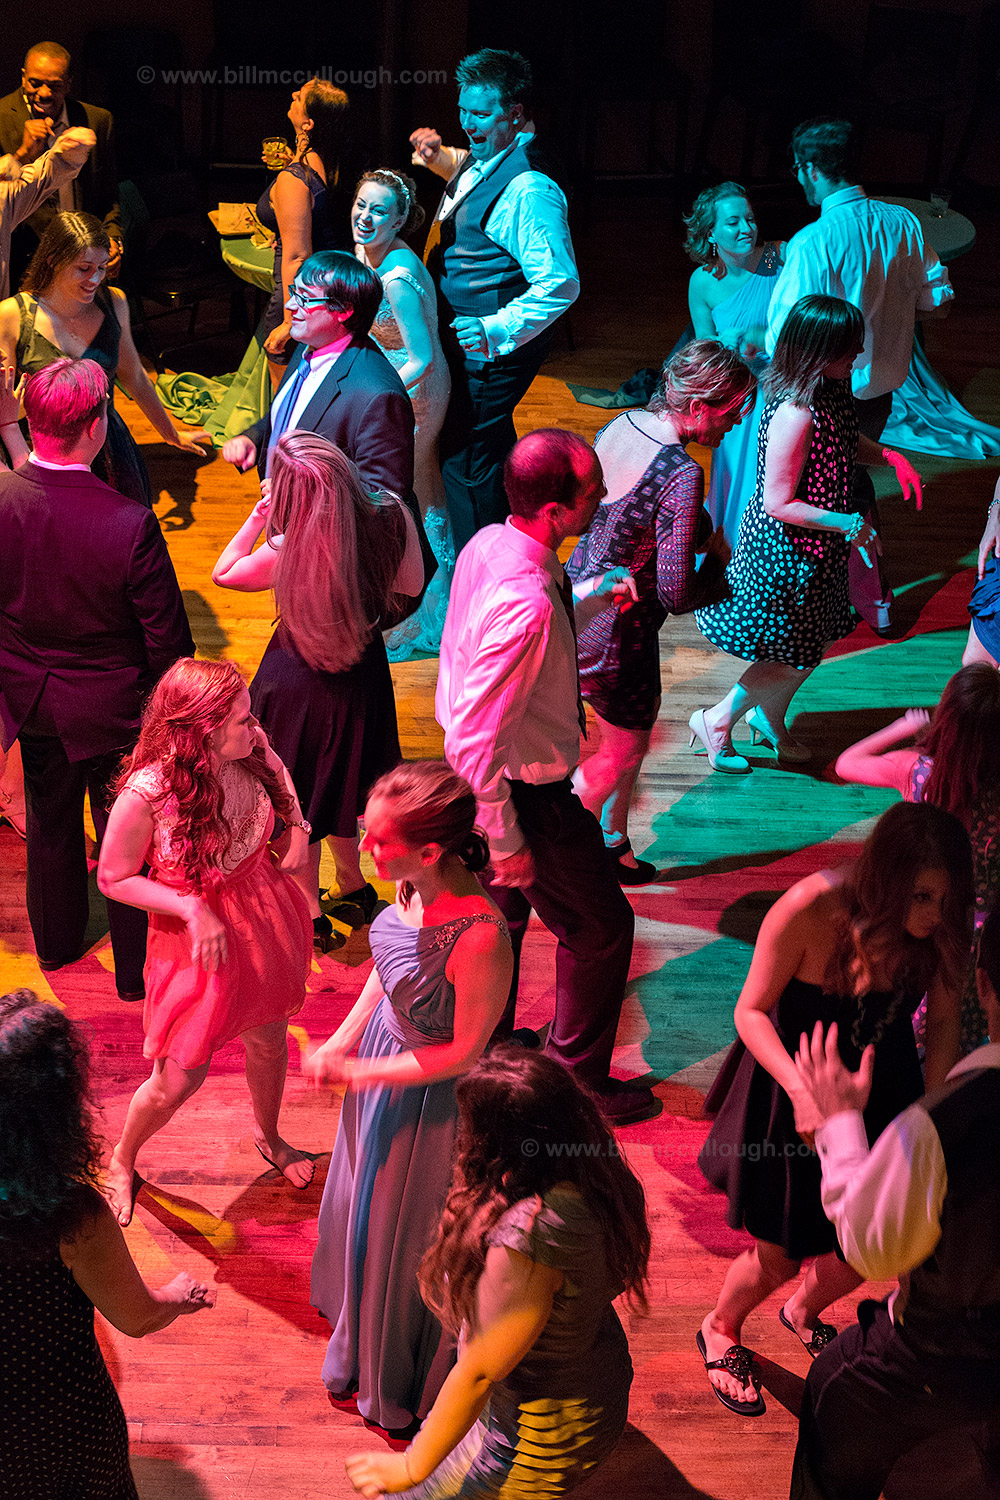 wedding-kessler-theater-dallas-dance.jpg